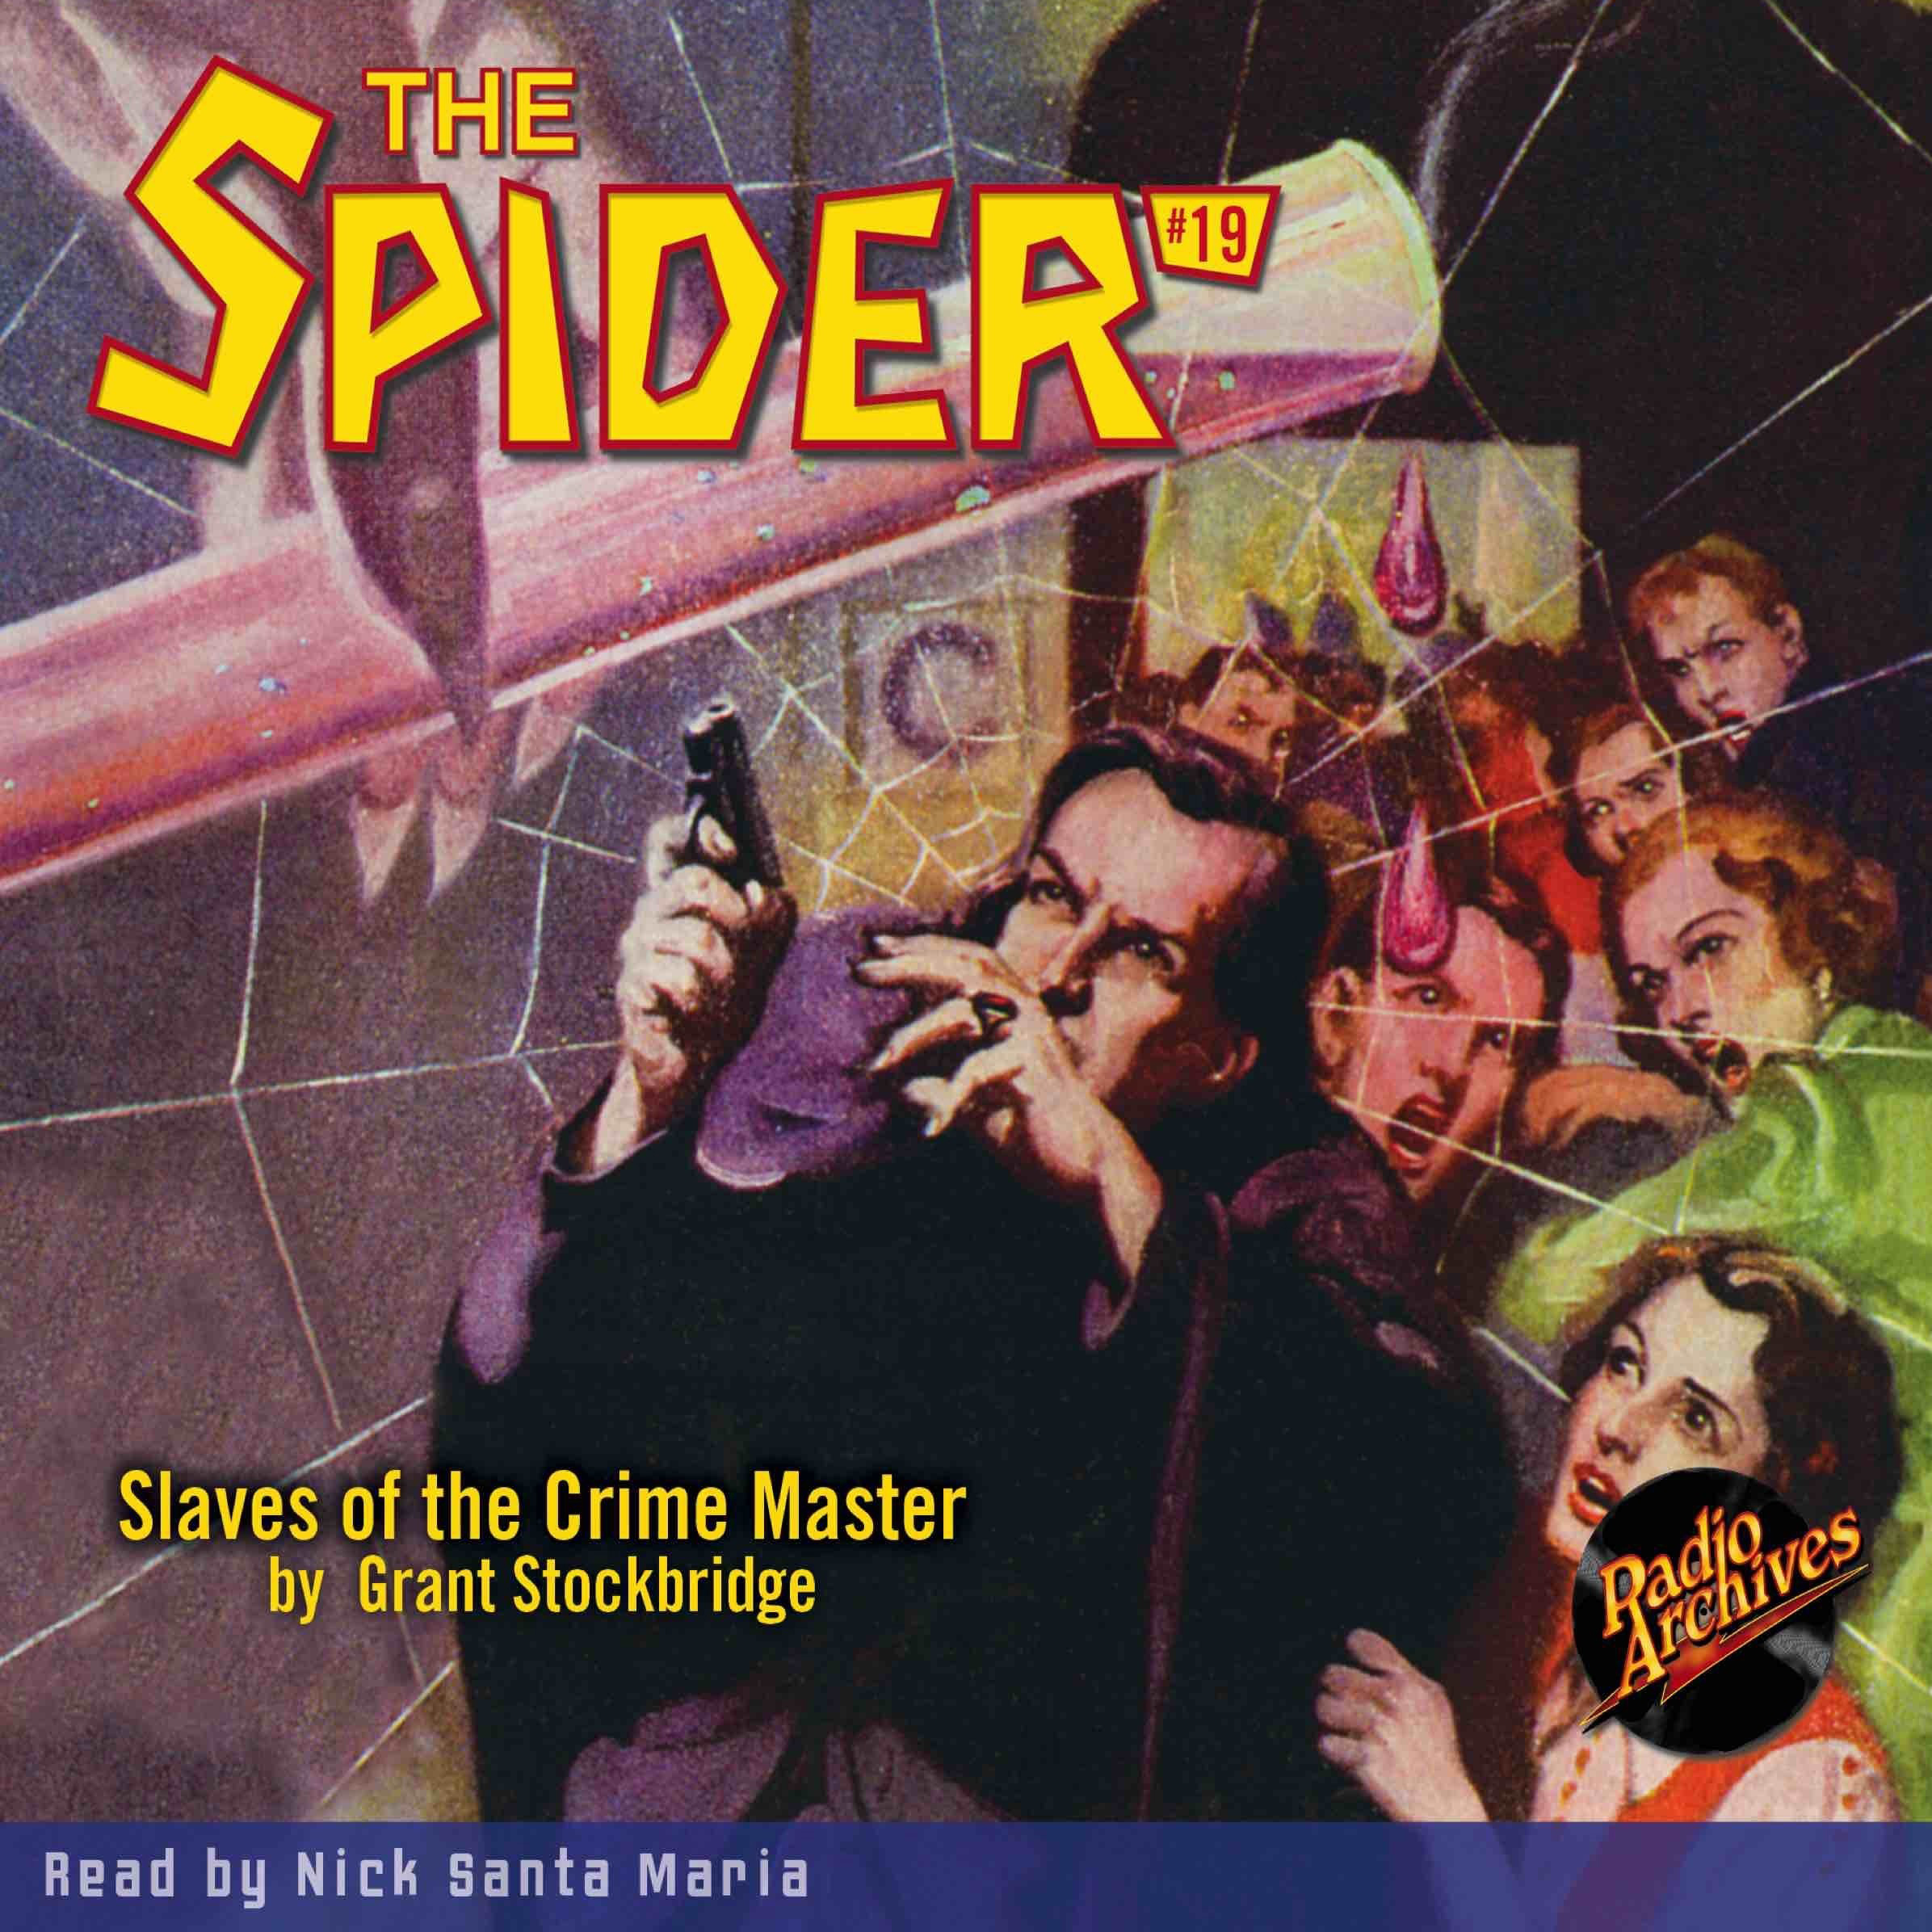 Printable Spider #19, The: Slaves of the Crime Master Audiobook Cover Art